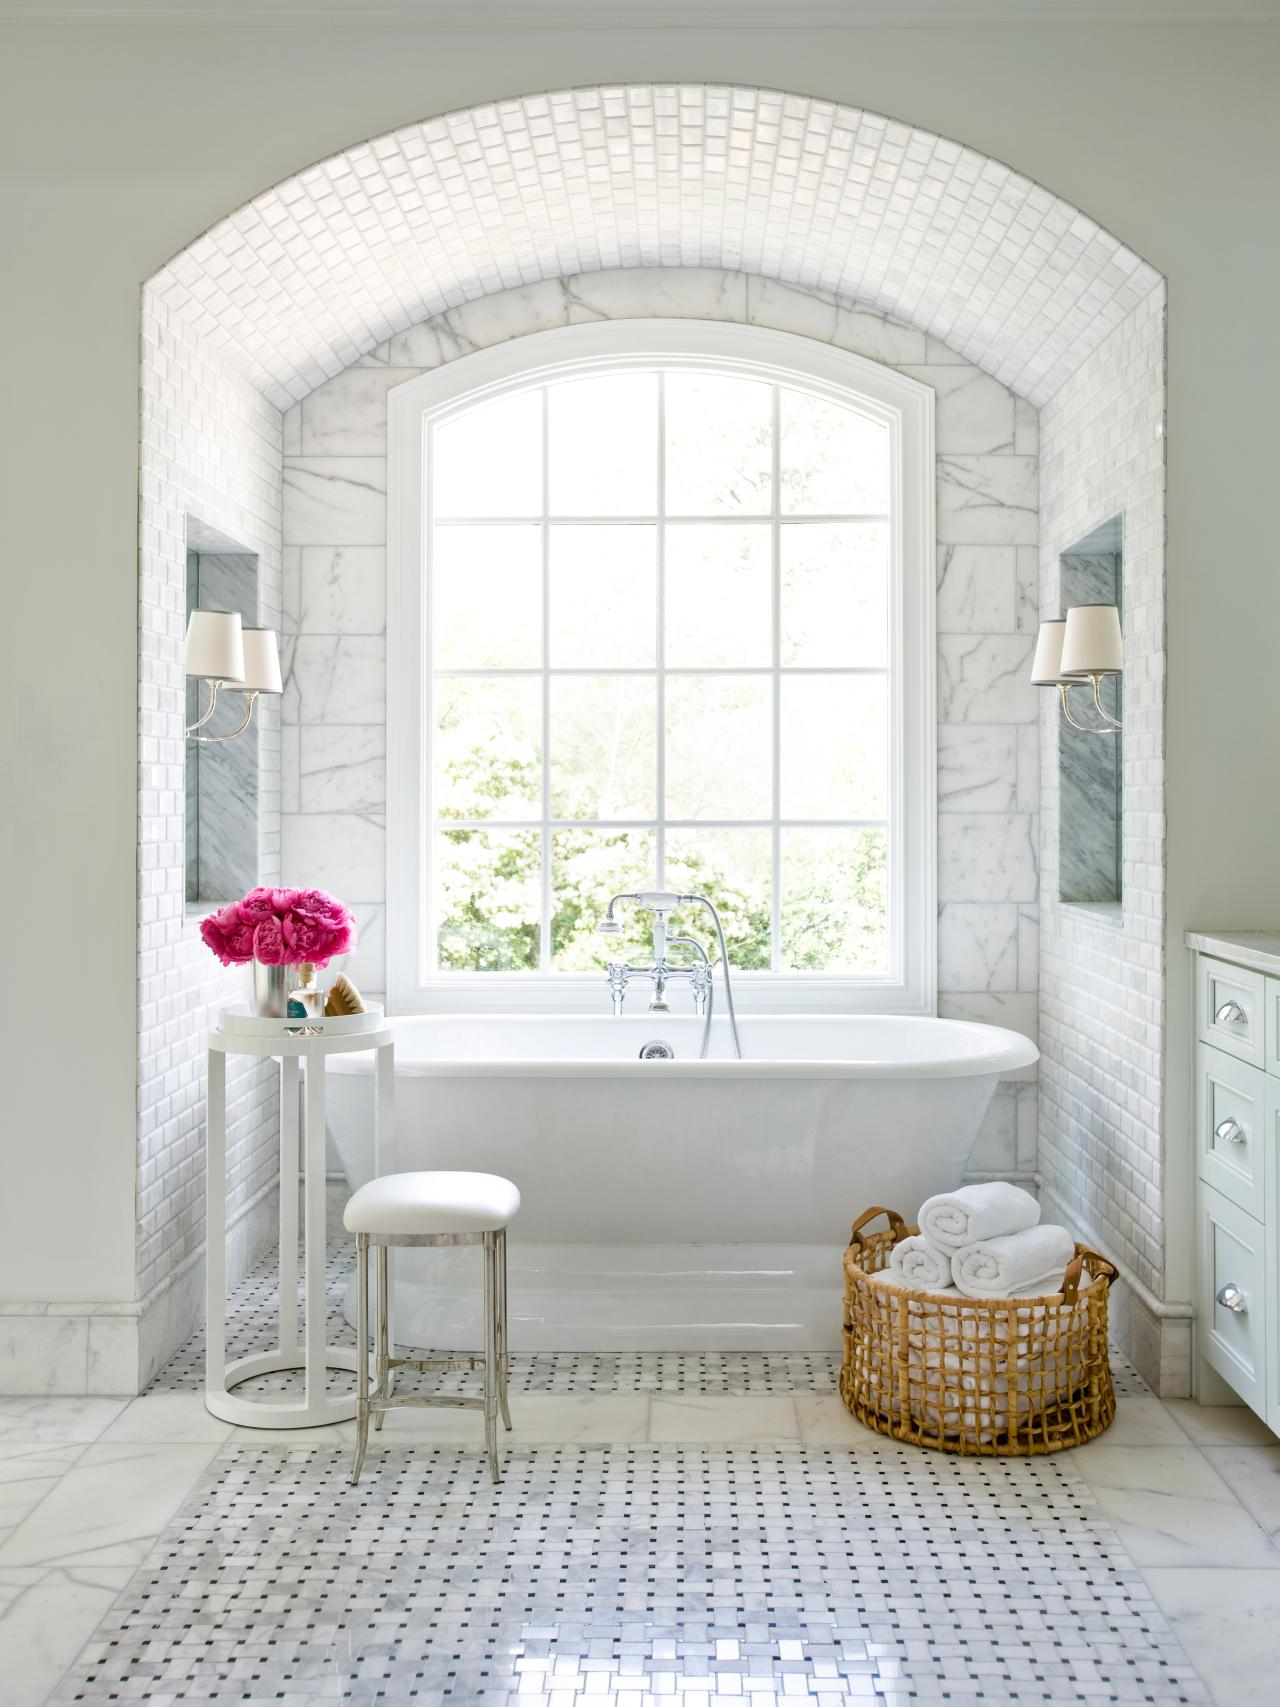 Top 20 Bathroom Tile Trends of 2017 | HGTV\u0027s Decorating \u0026 Design ...